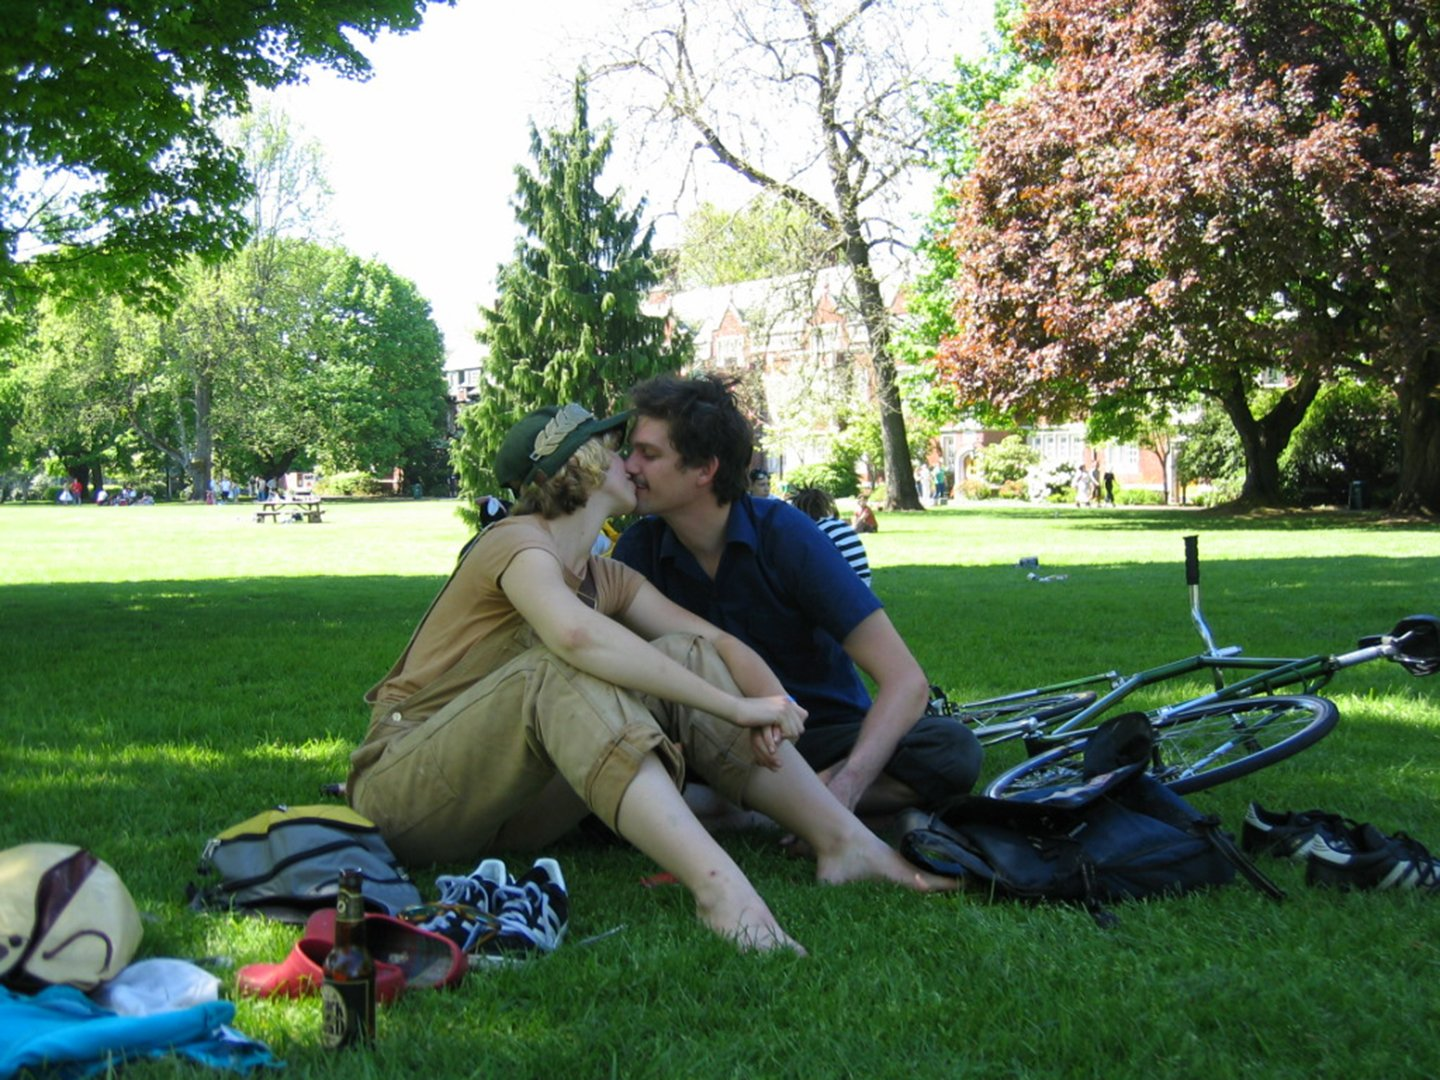 a person in overalls sitting on grass kissing a person in a polo shirt sitting next to a bike